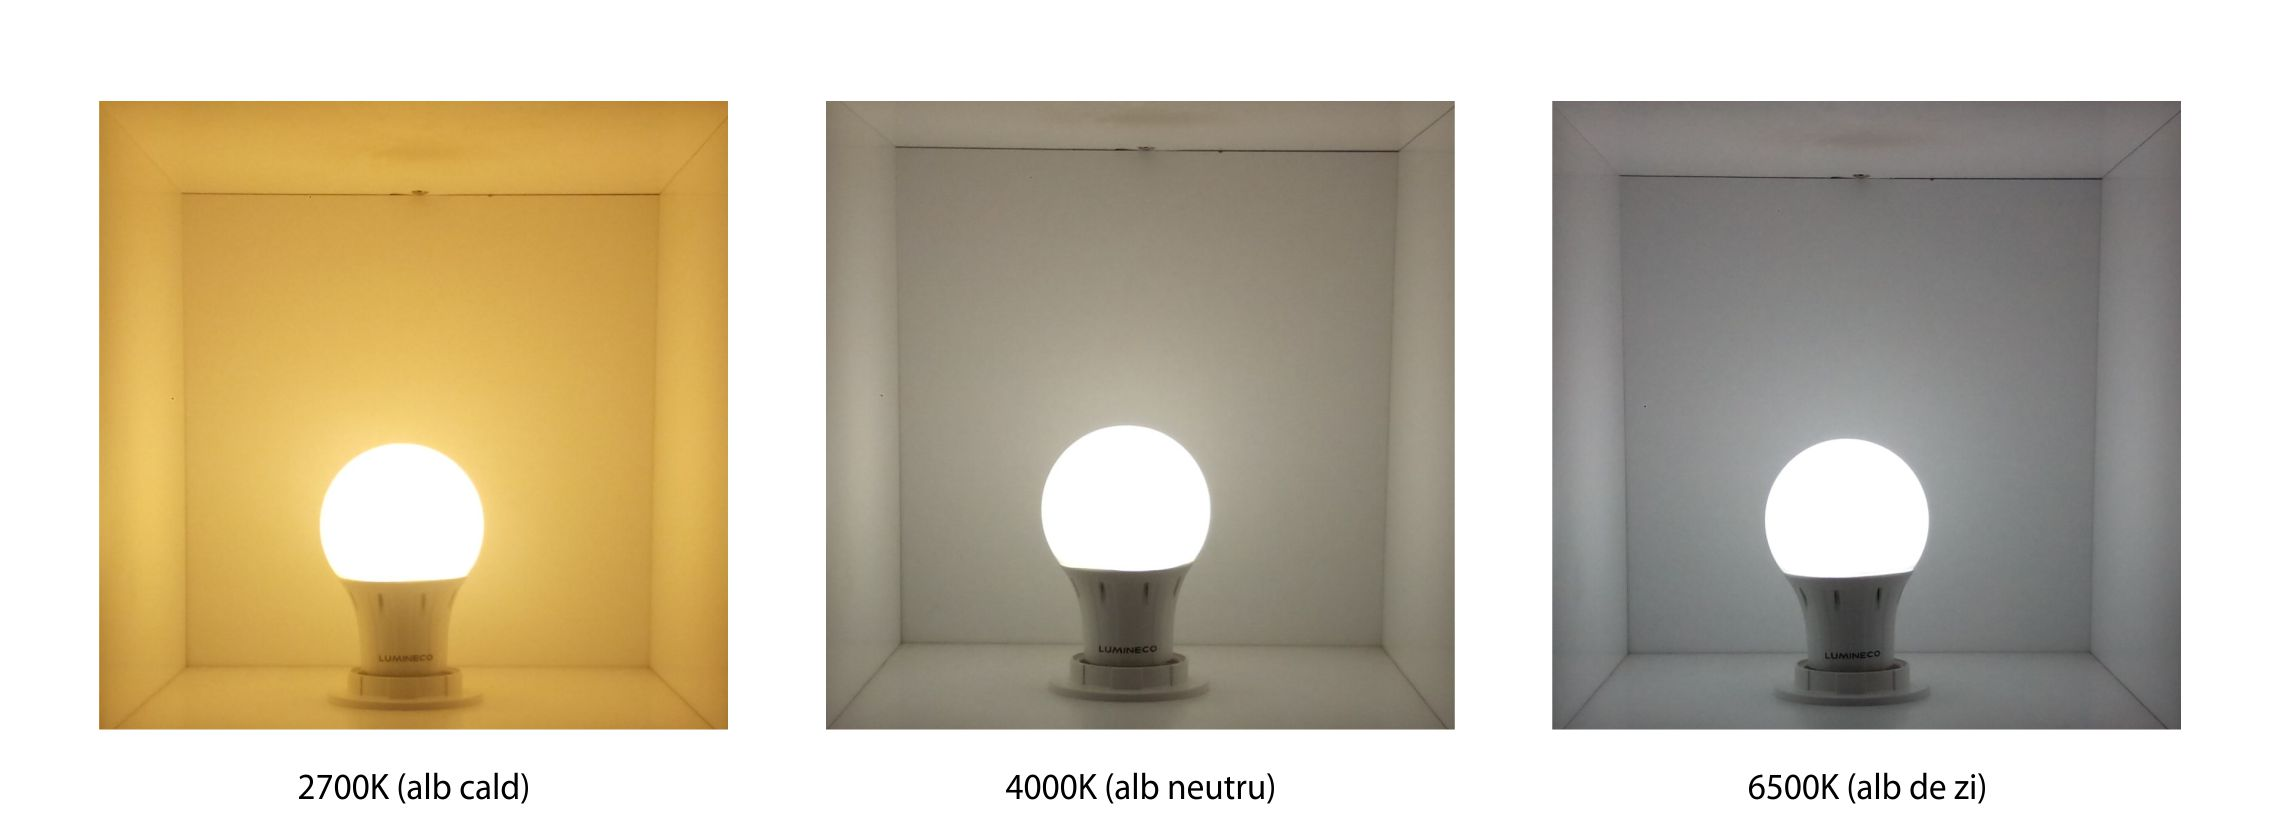 Color temperature box